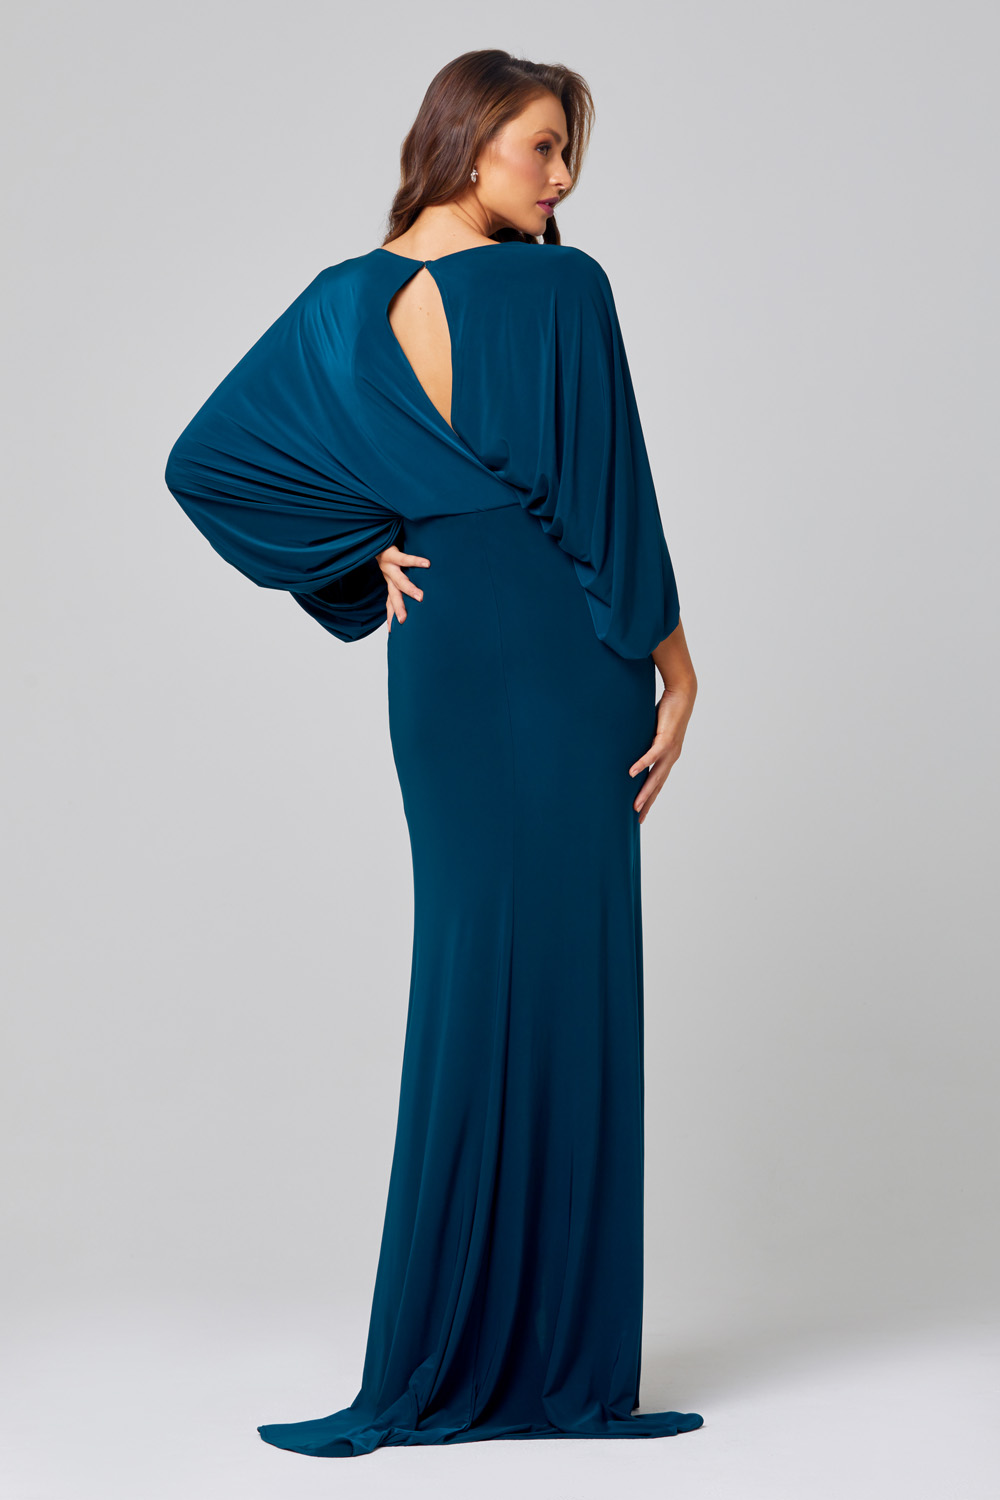 Cleo Cape Sleeve Bridesmaid Dress – TO845 back